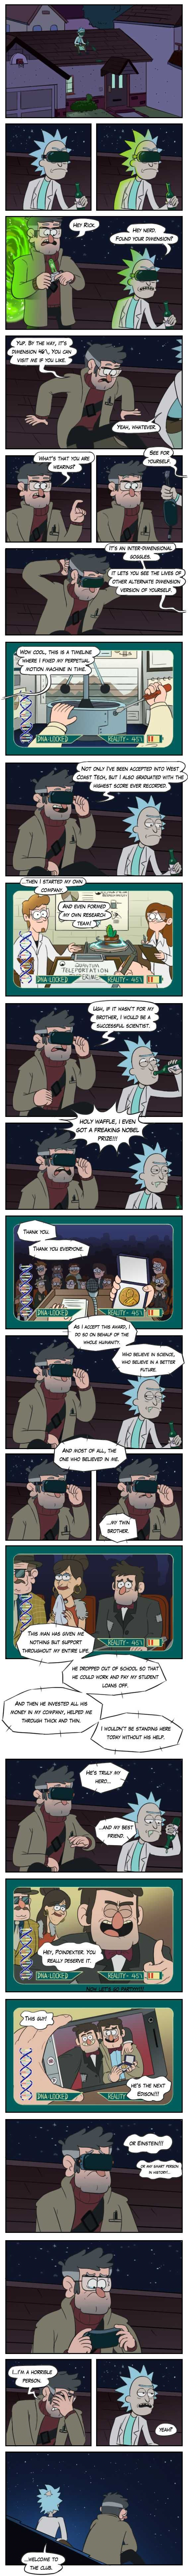 Crossover Rick and Morty & Gravity Falls - Imgur